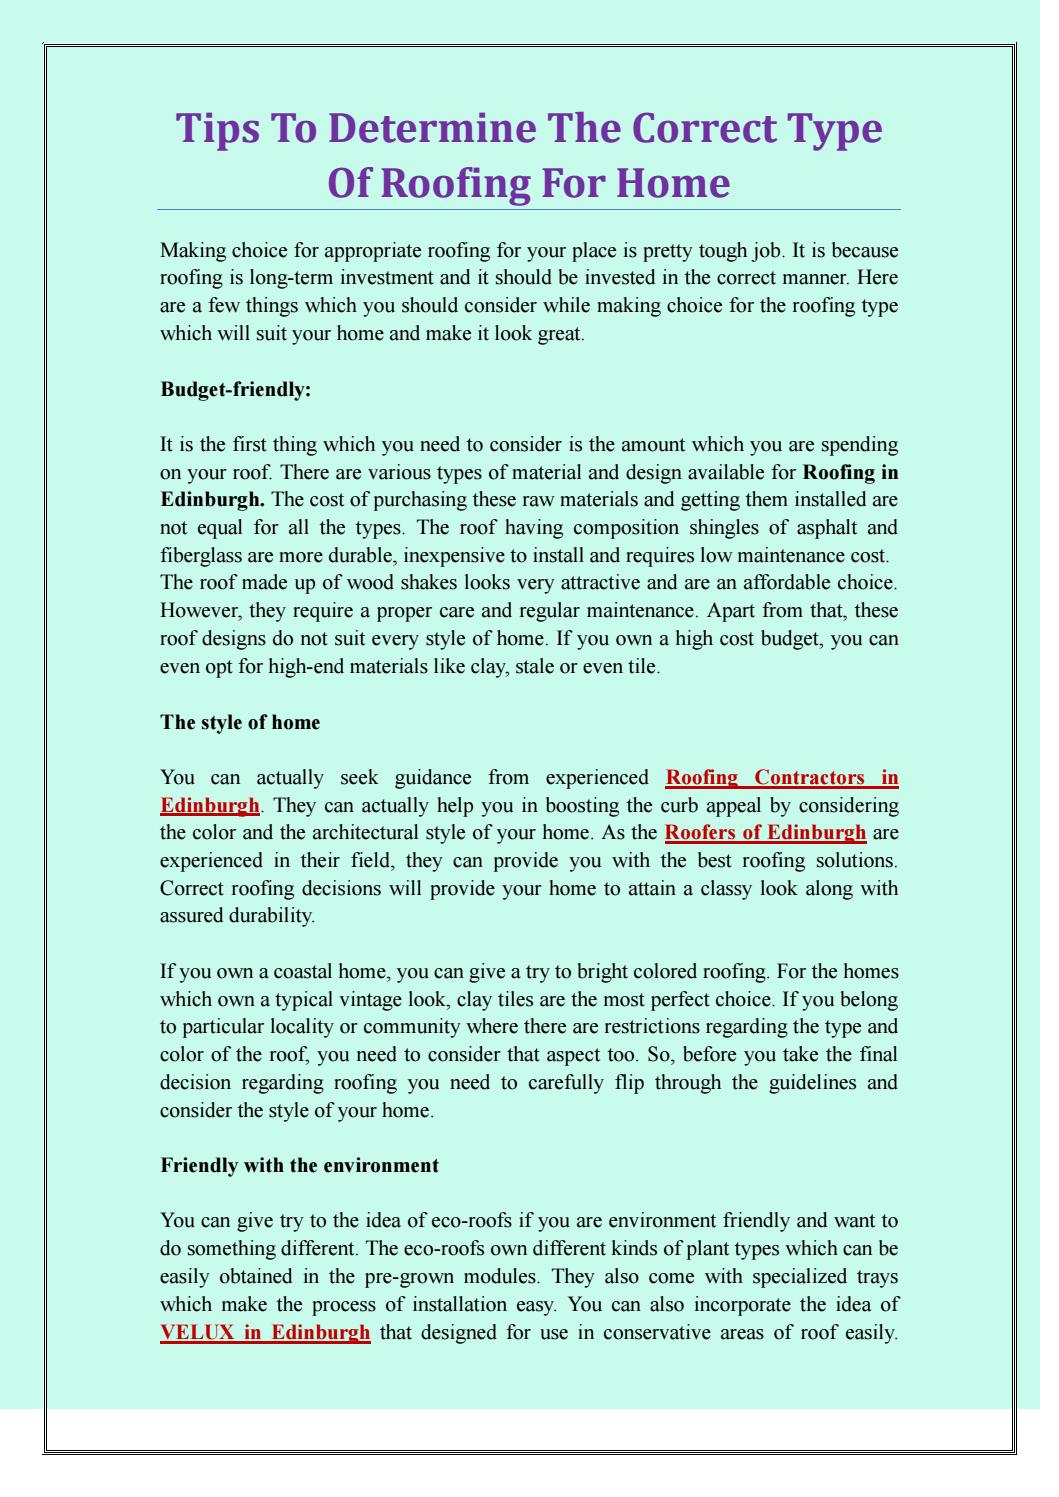 Tips To Consider Correct Type Of Roofing For Your Home Pdf By Mgfroofers Issuu